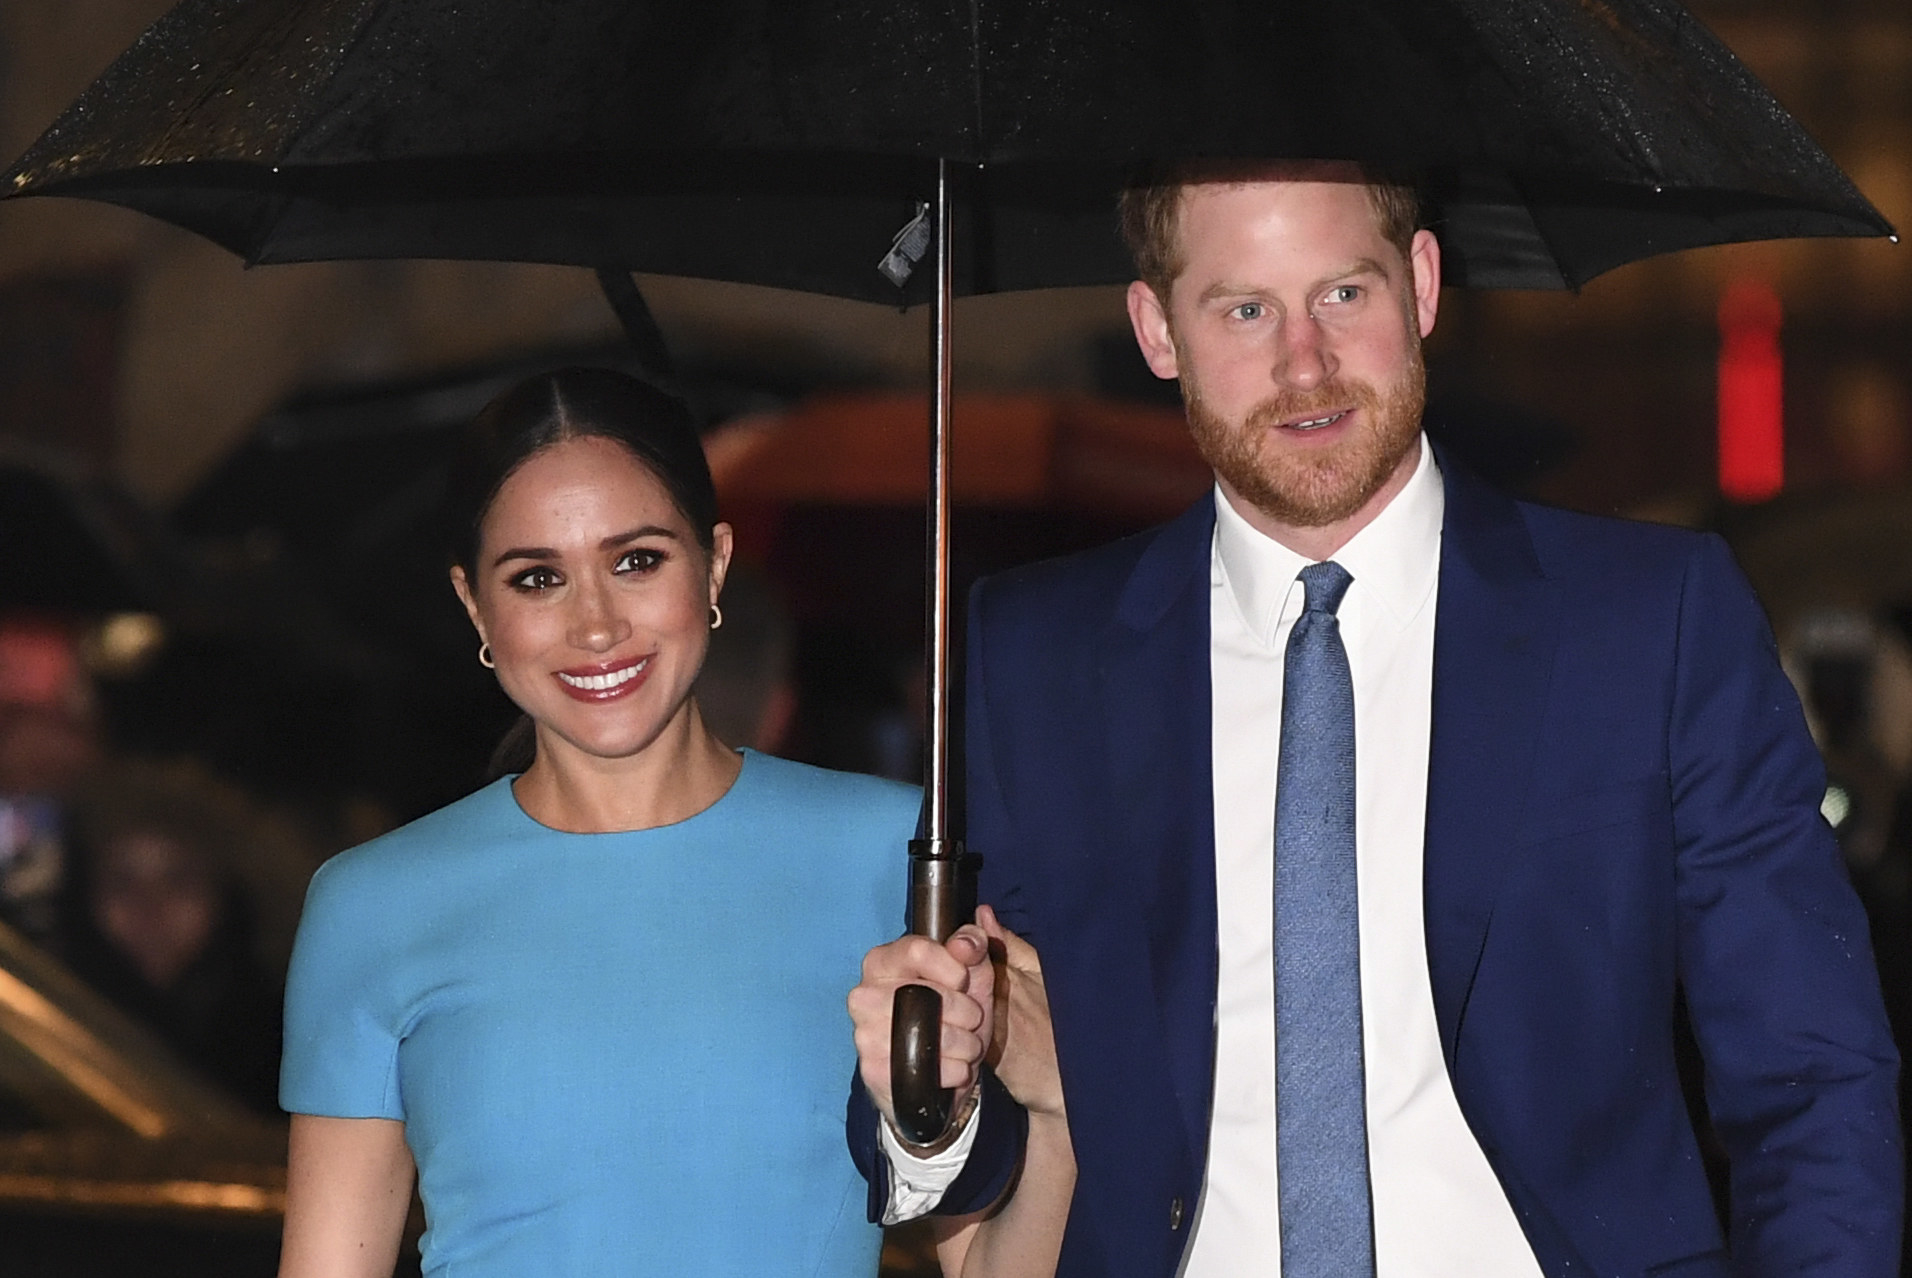 Meghan smiles next to Prince Harry while standing under an umbrella